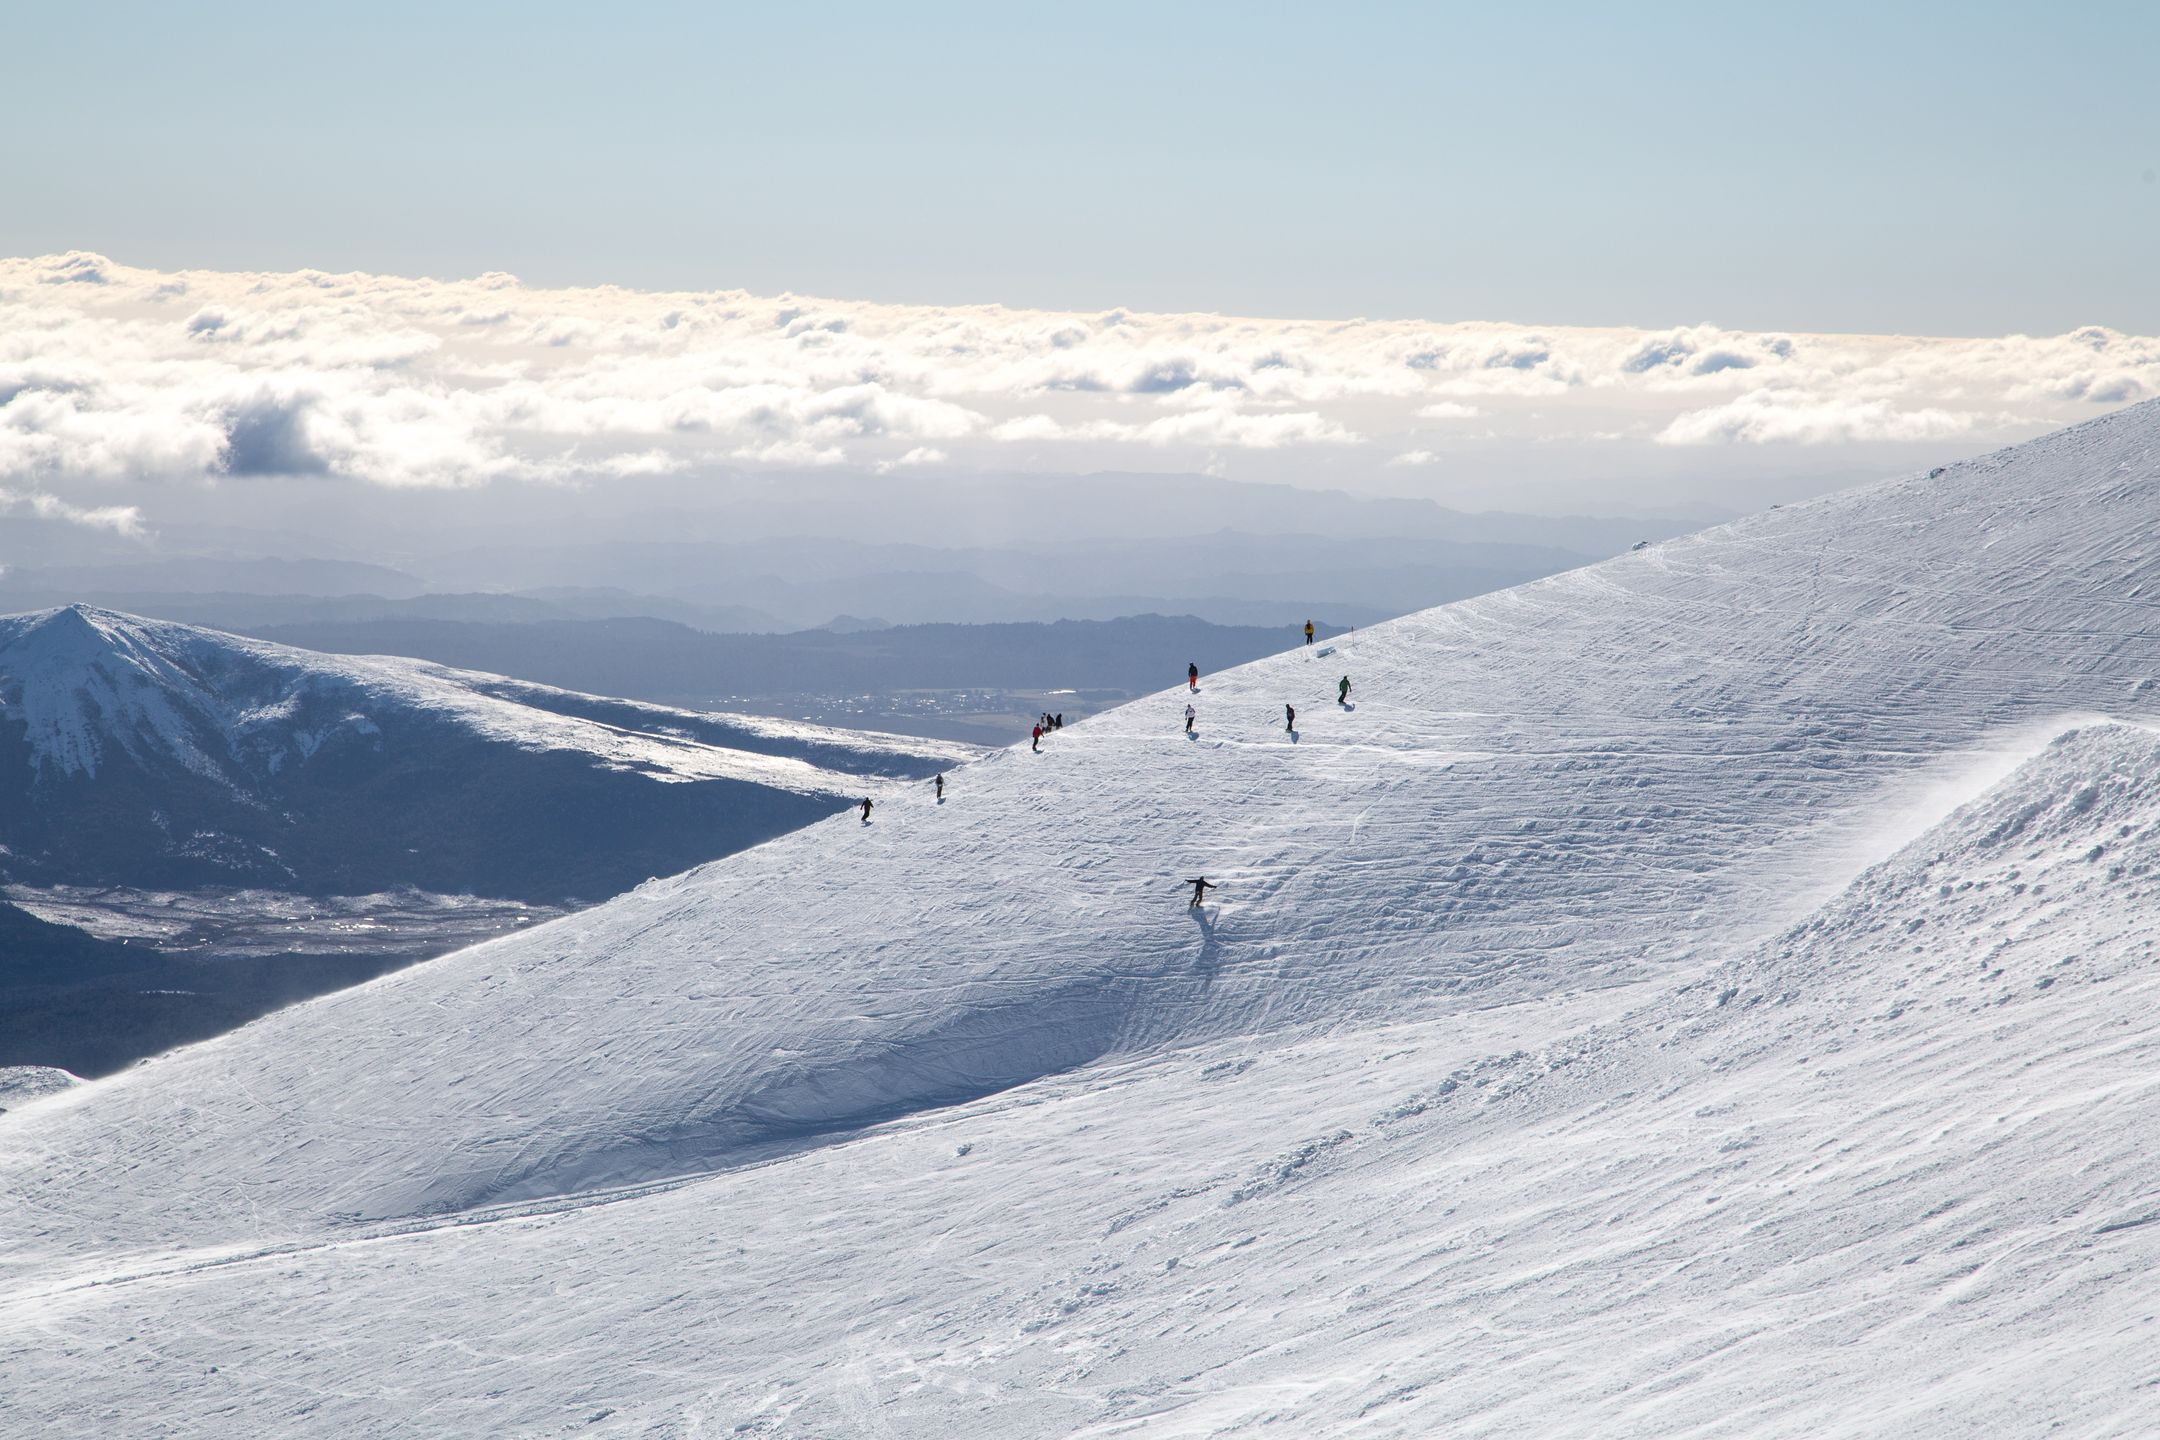 Skiing New Zealand ski resort Turoa ripatrip travel big